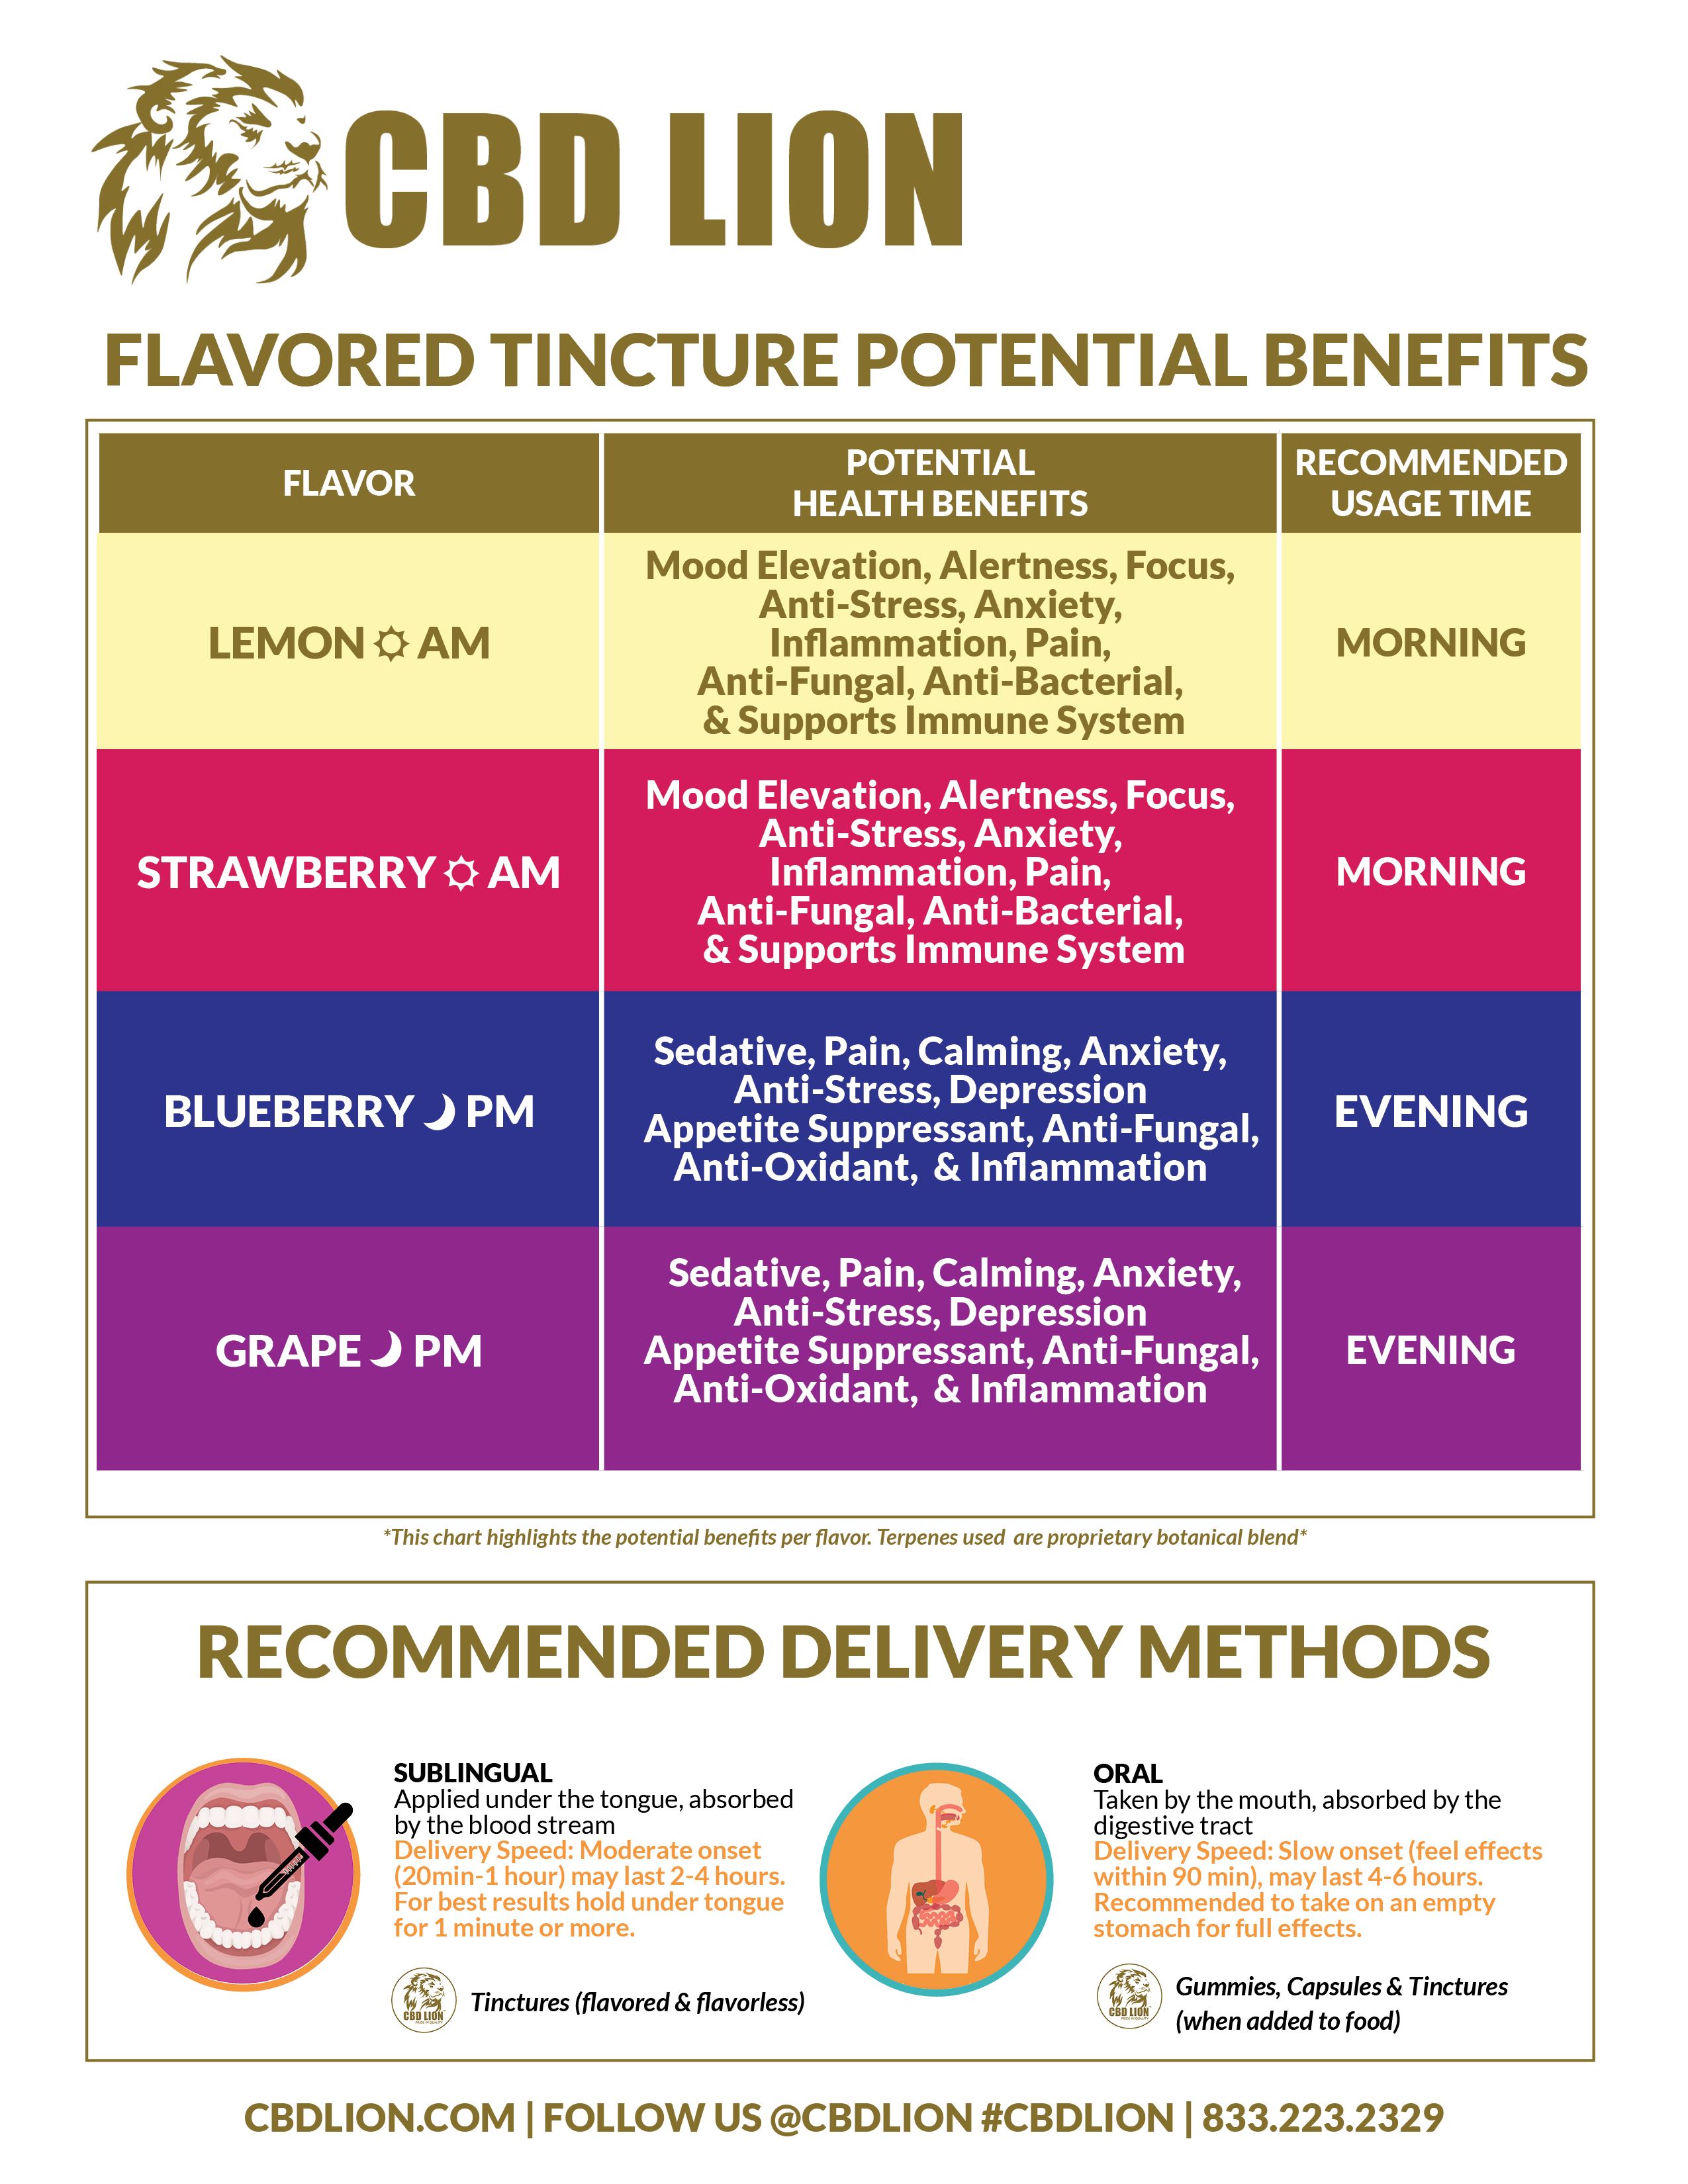 flavored-tincture-potential-benefits-cbdlion.png